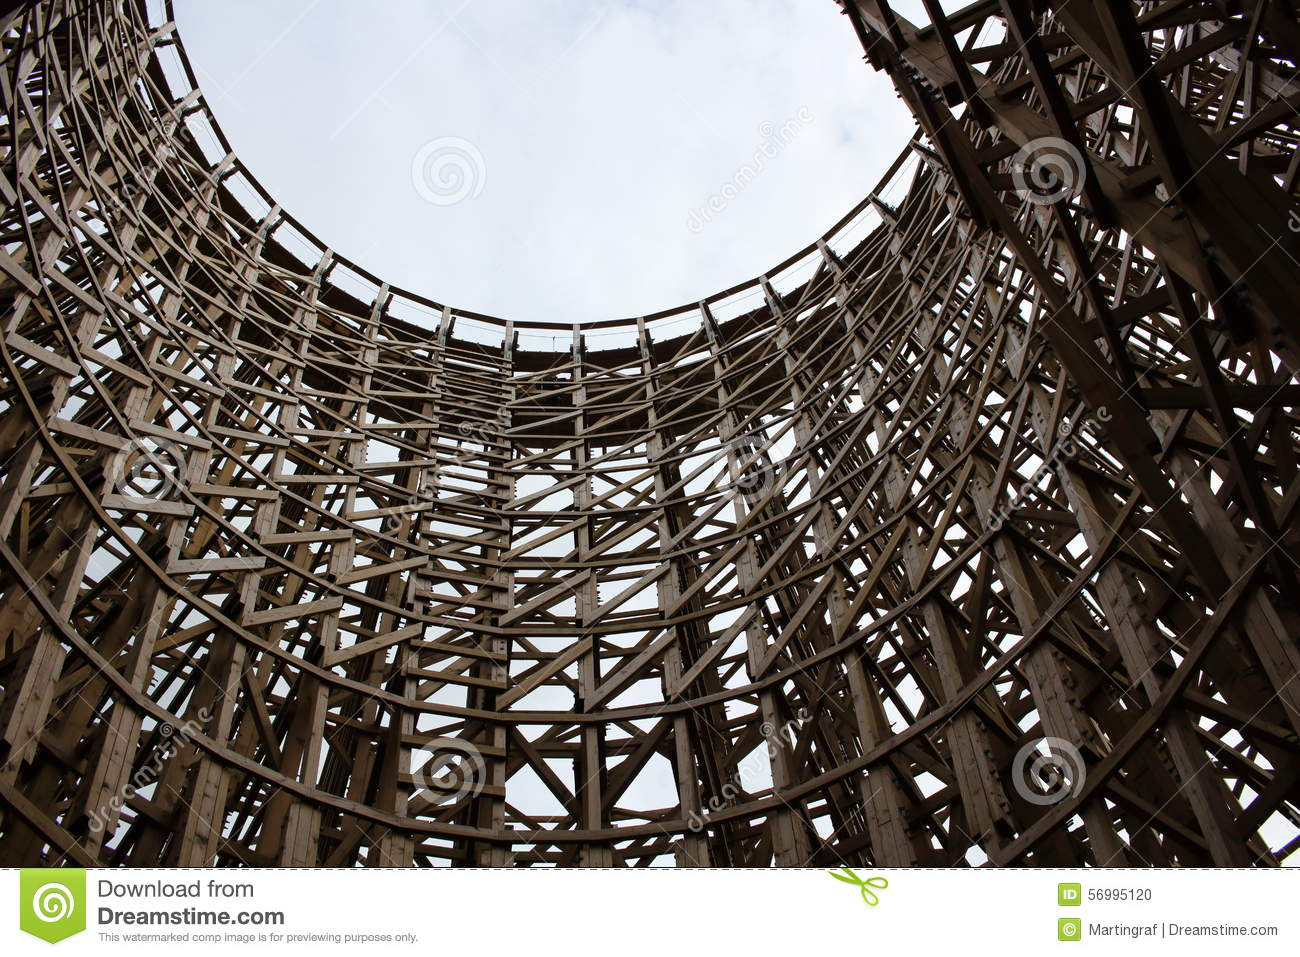 Wooden roller coaster structure stock photo image 56995120 for Structure photography